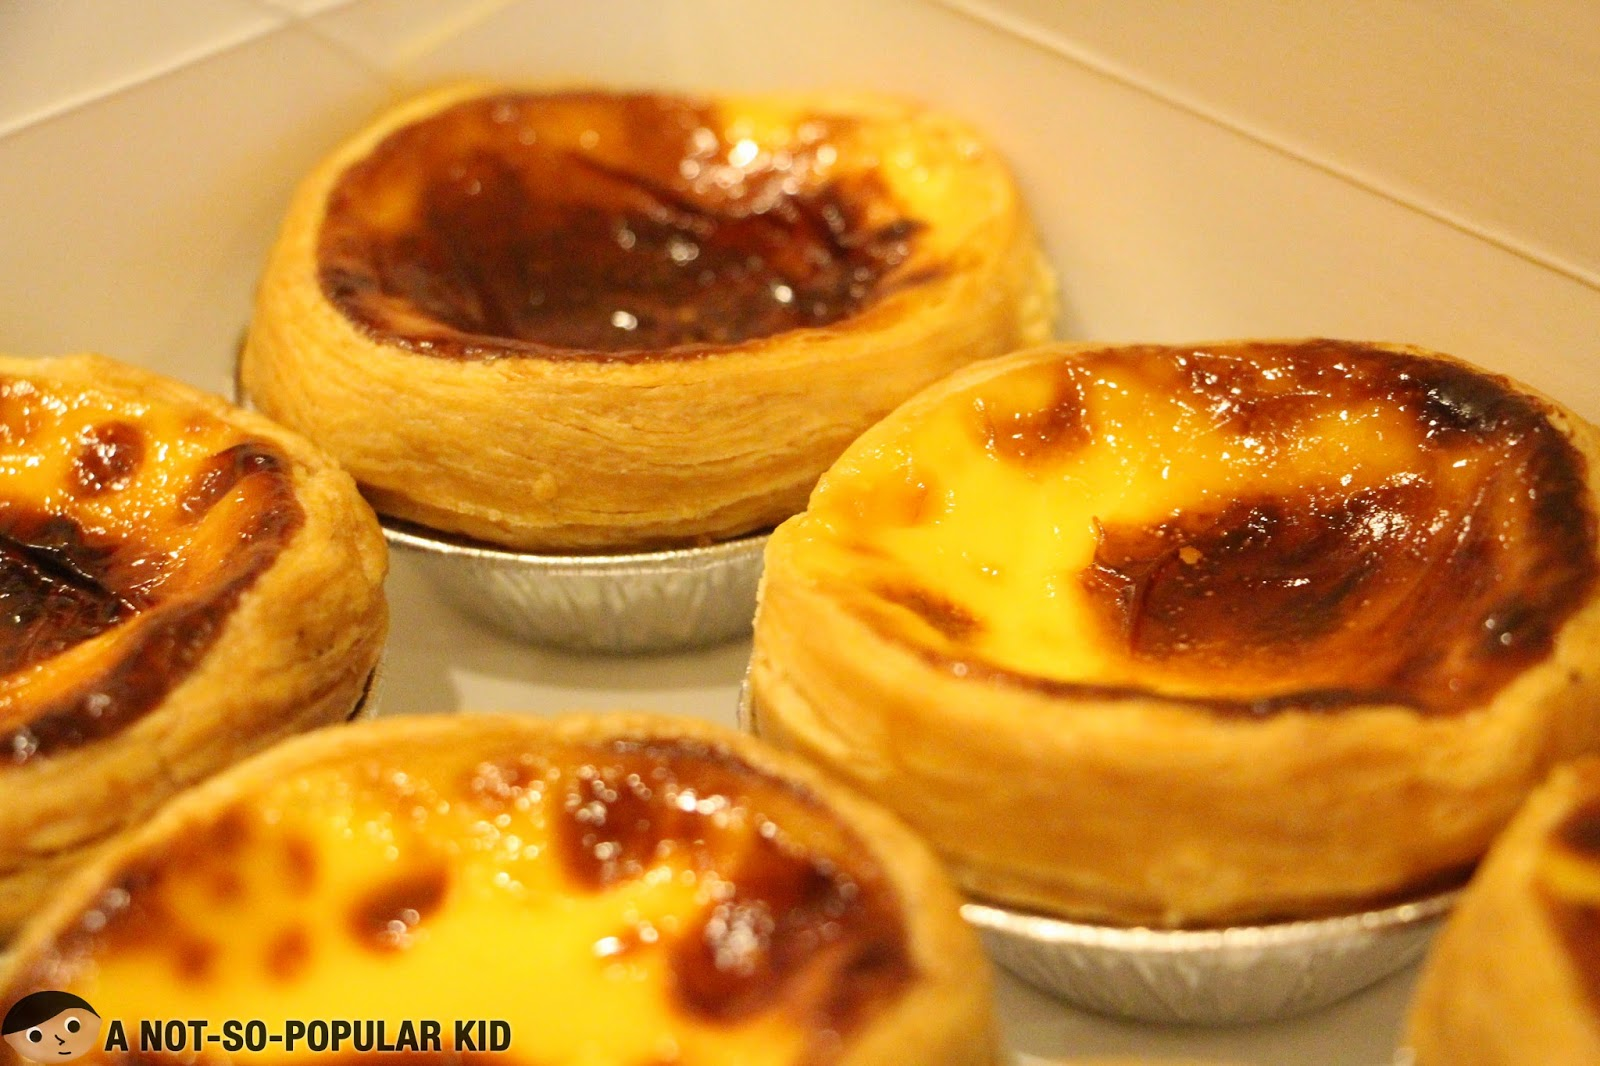 Popular Egg Tarts of Lord Stow's Bakery